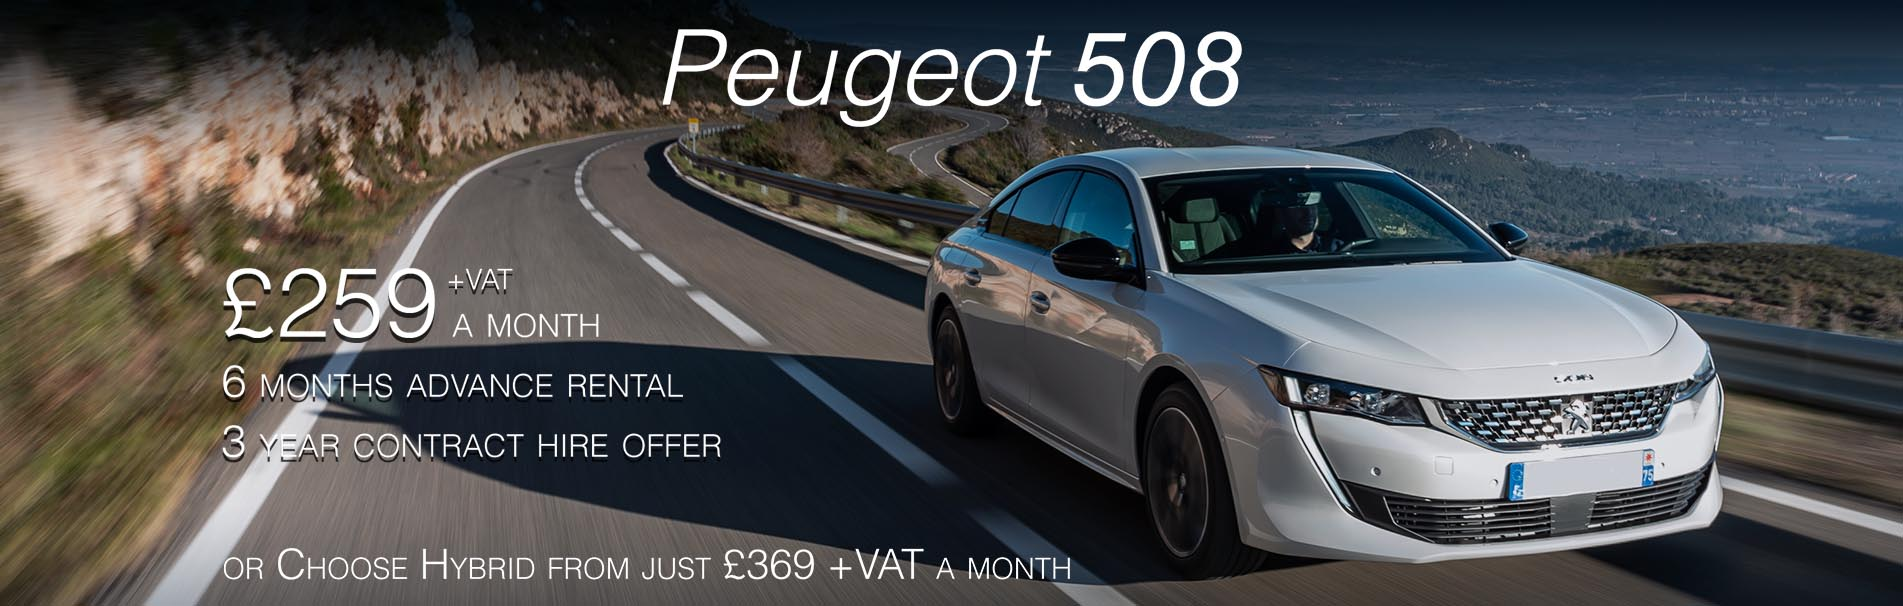 peugeot-508-fastback-contract-hire-offer-march-sli